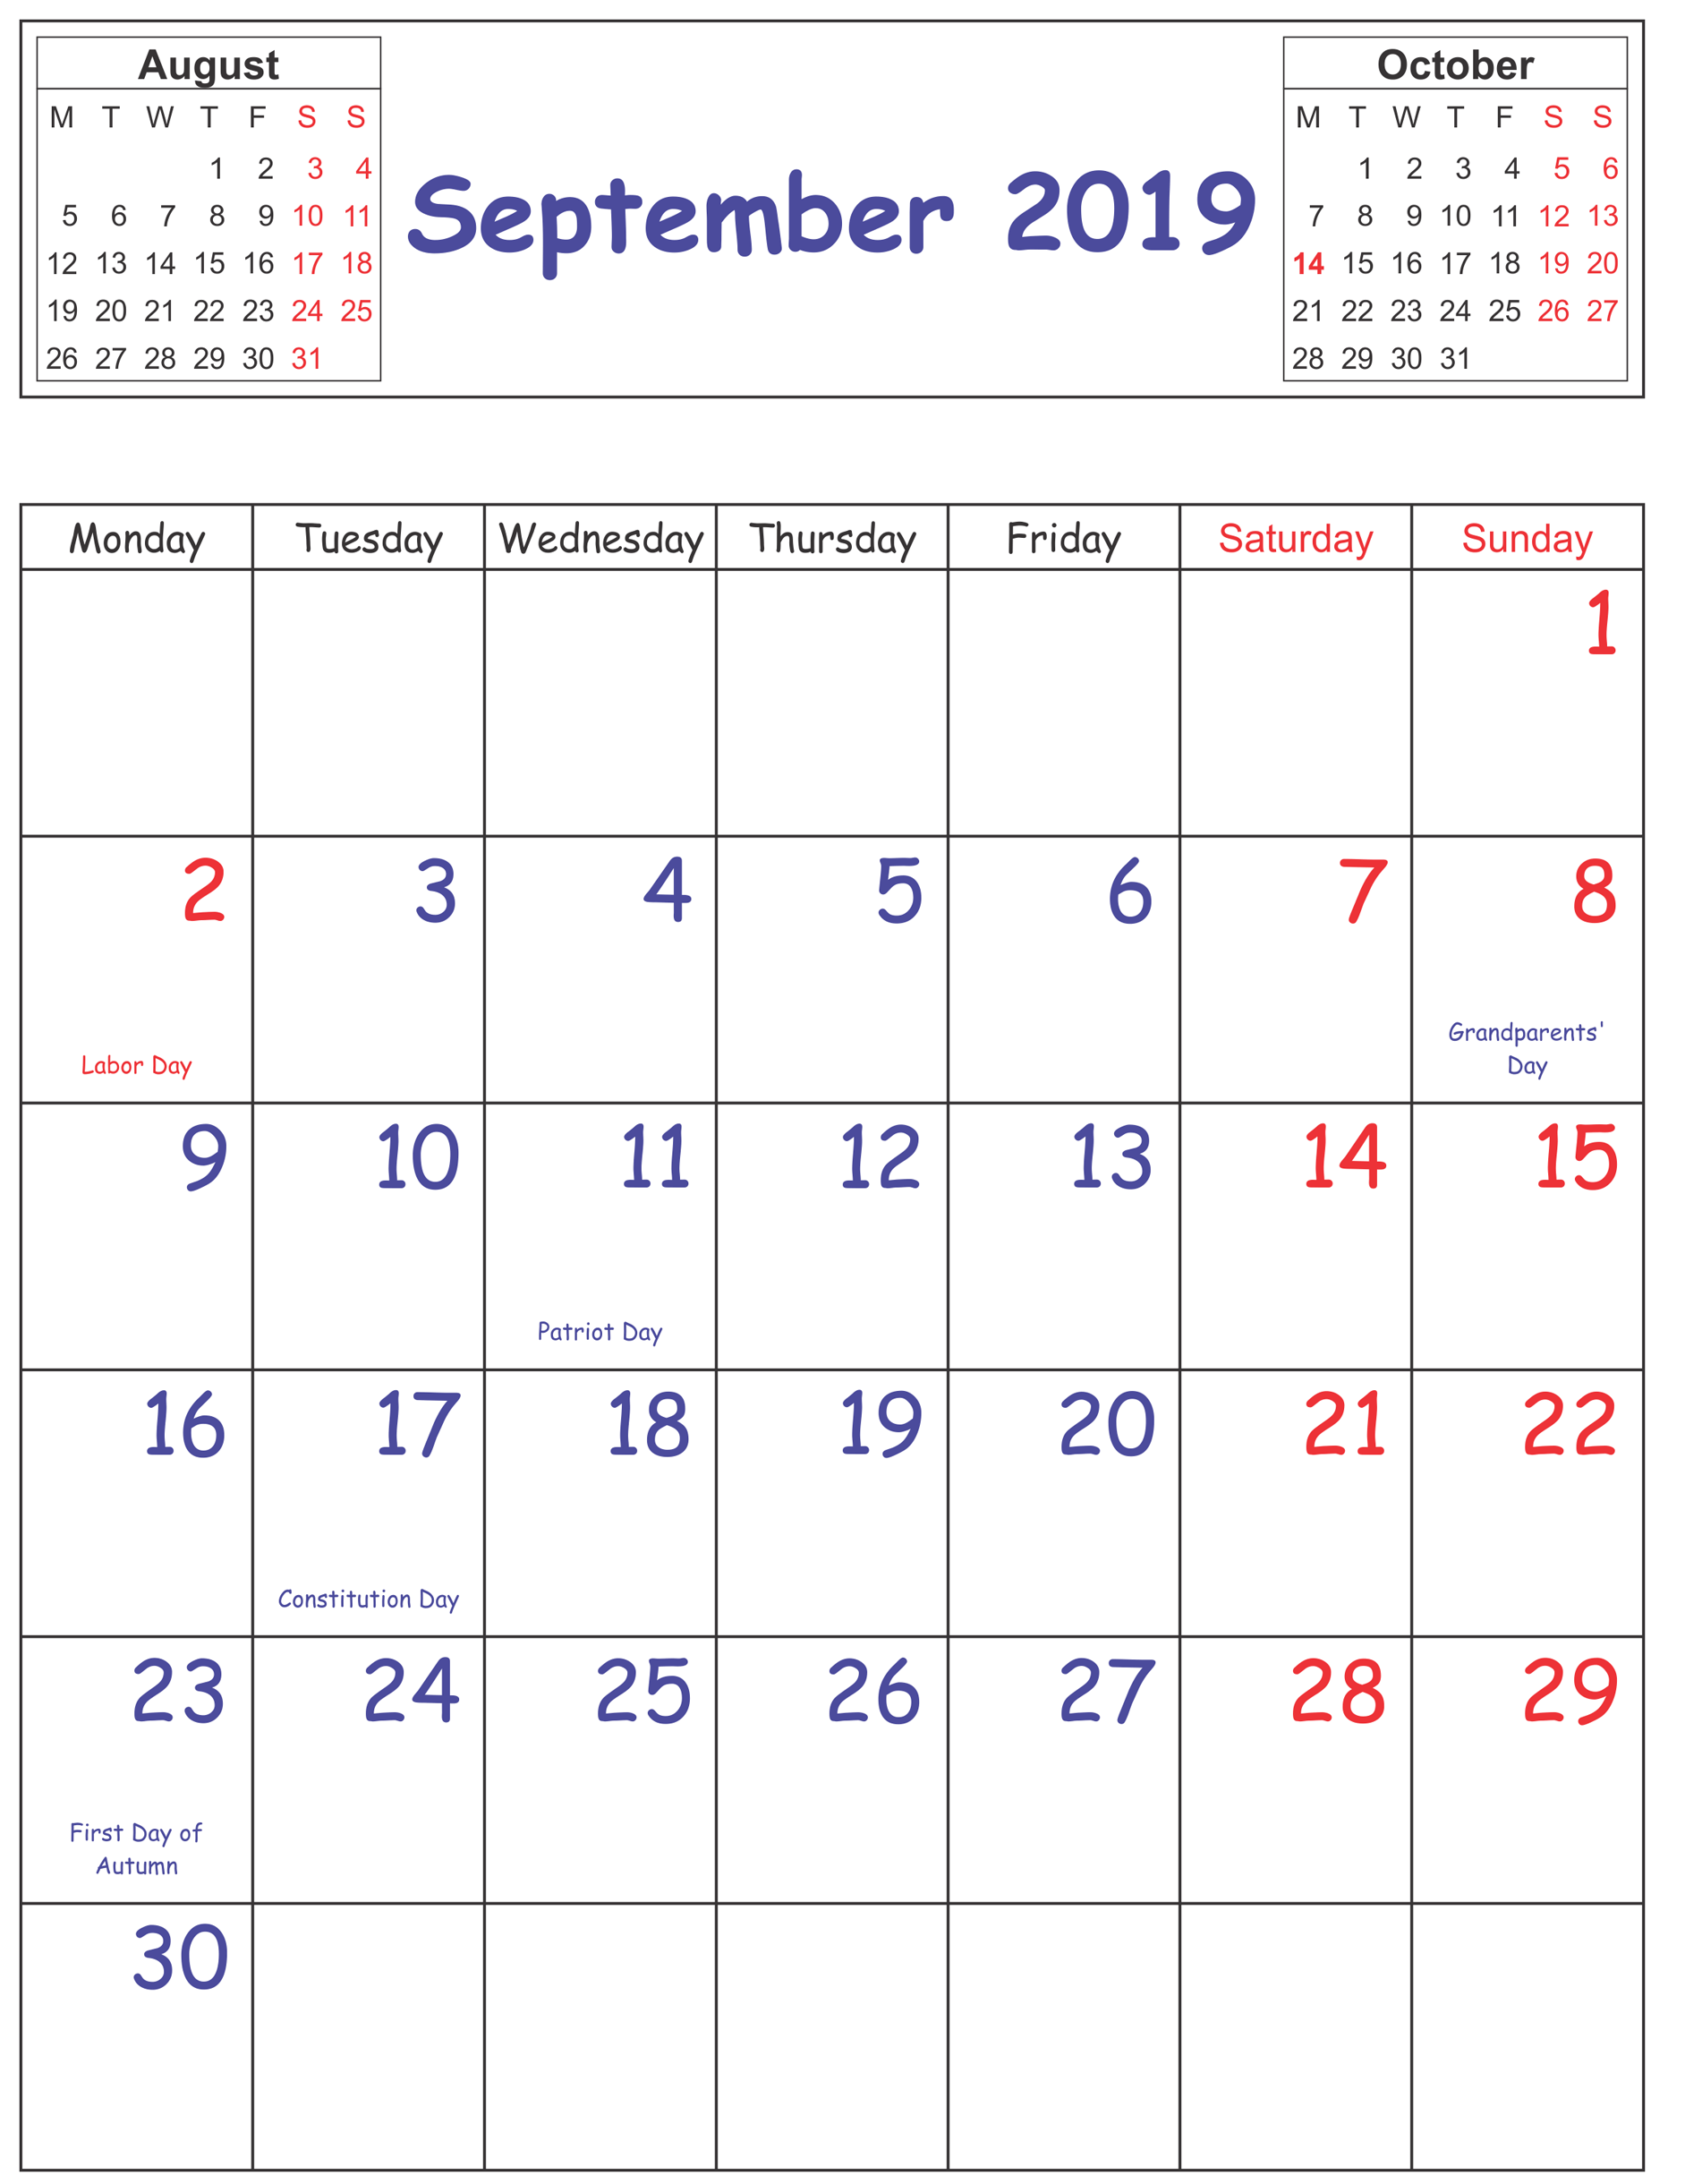 September Holidays 2019 UK Calendar